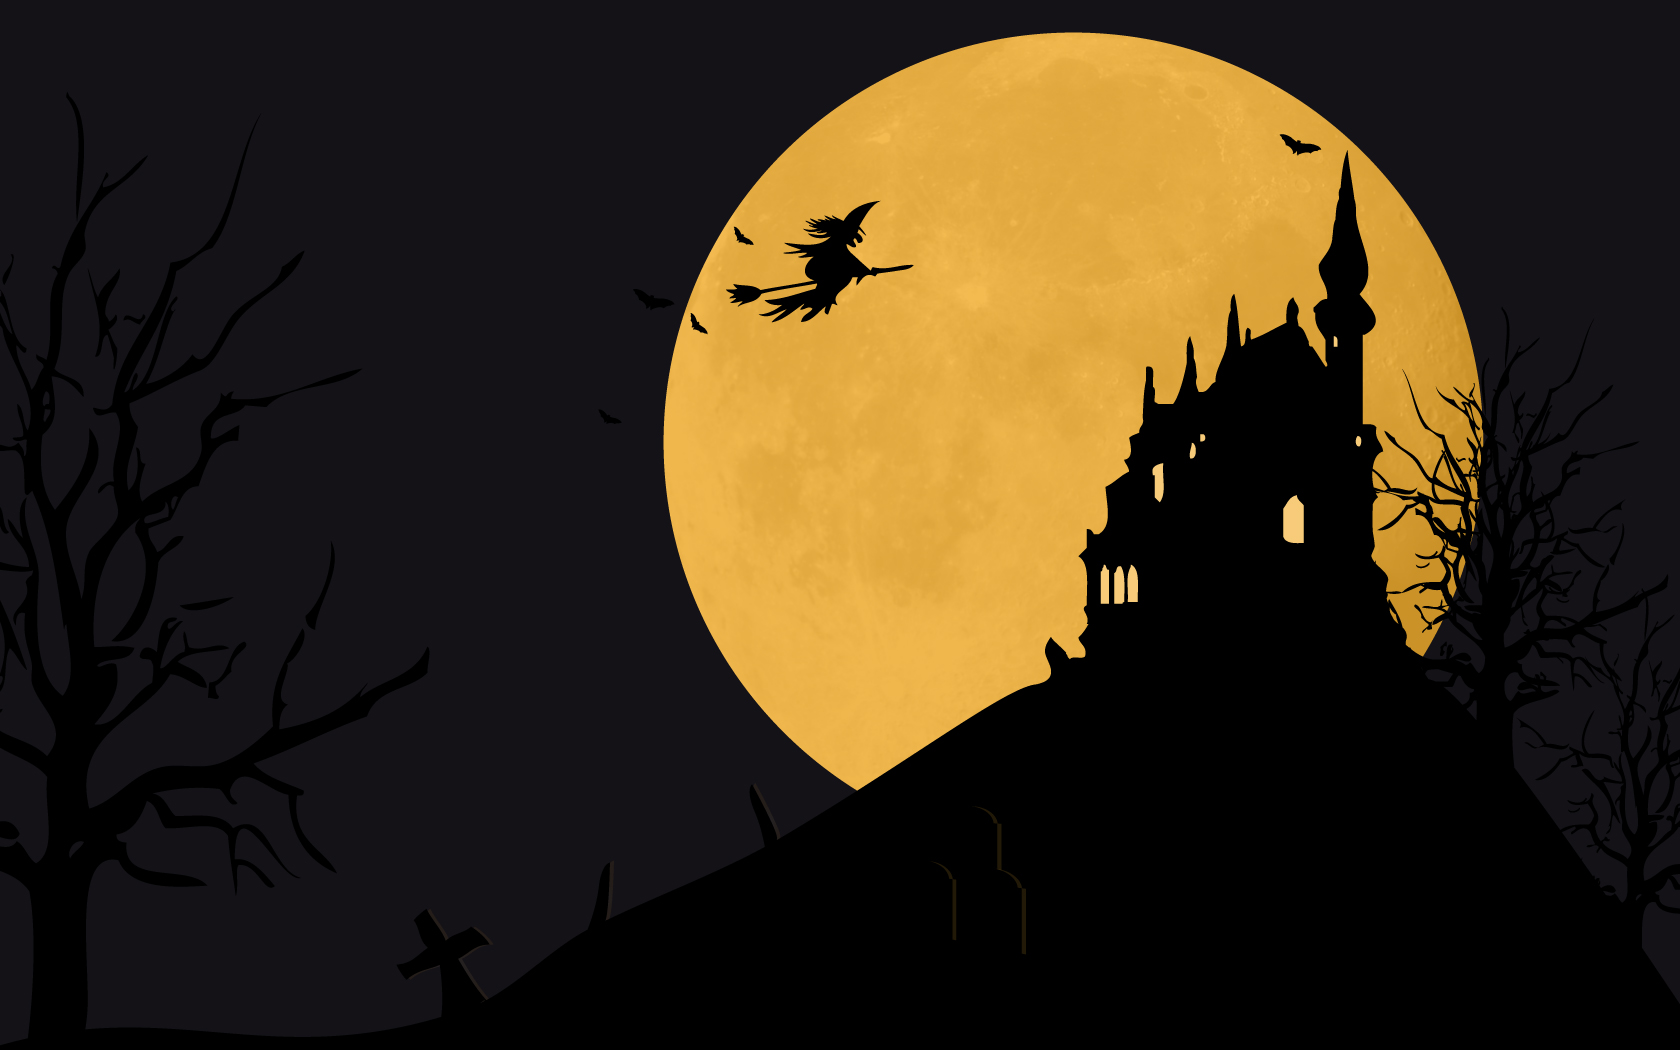 Hd Halloween Desktop Backgrounds - WallpaperSafari